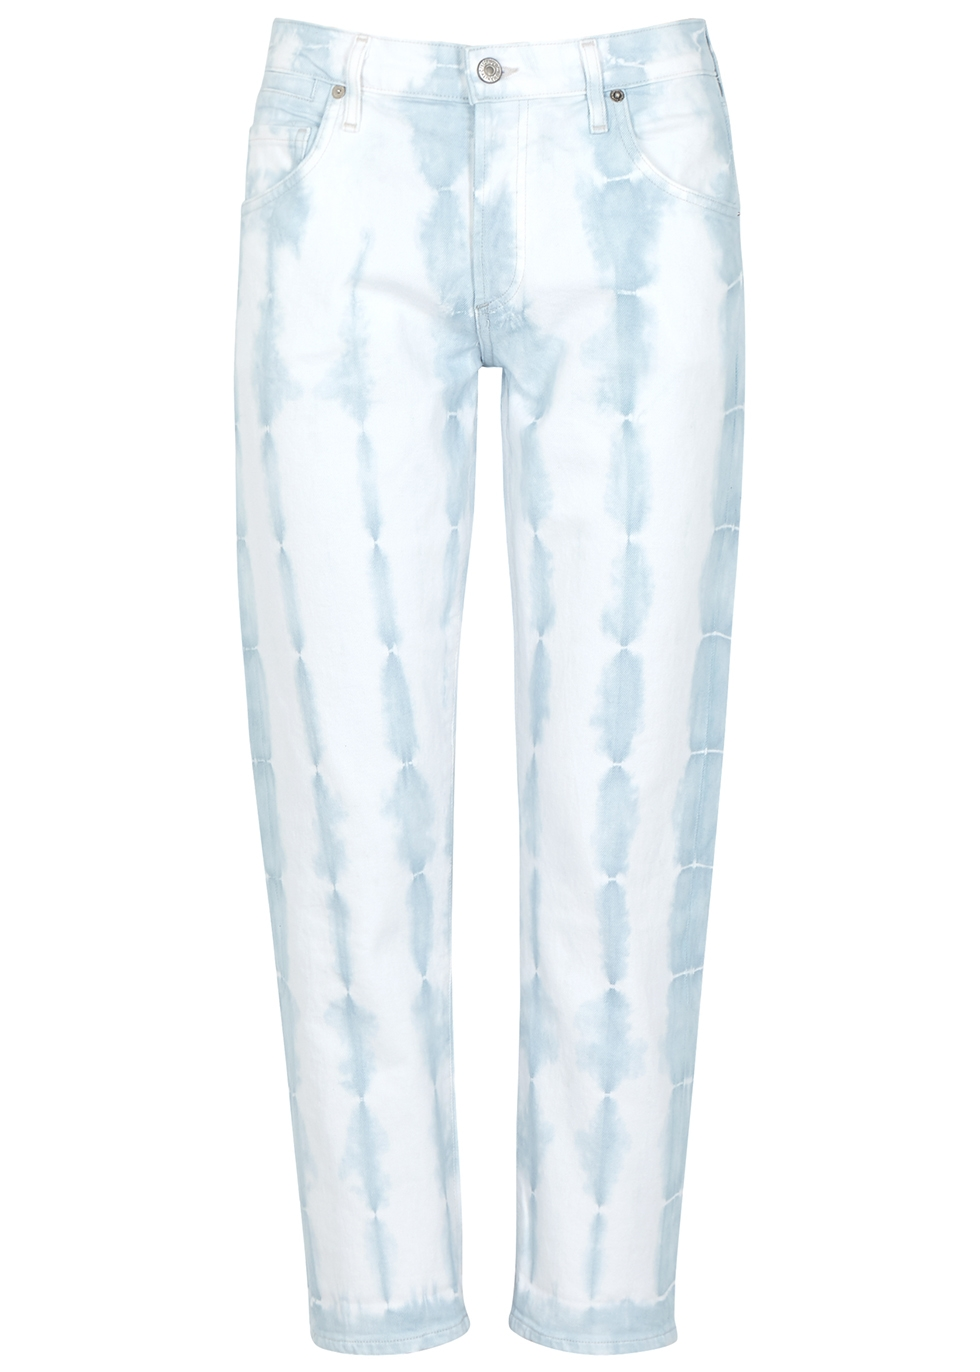 Emerson tie-dye slim-leg jeans - Citizens of Humanity